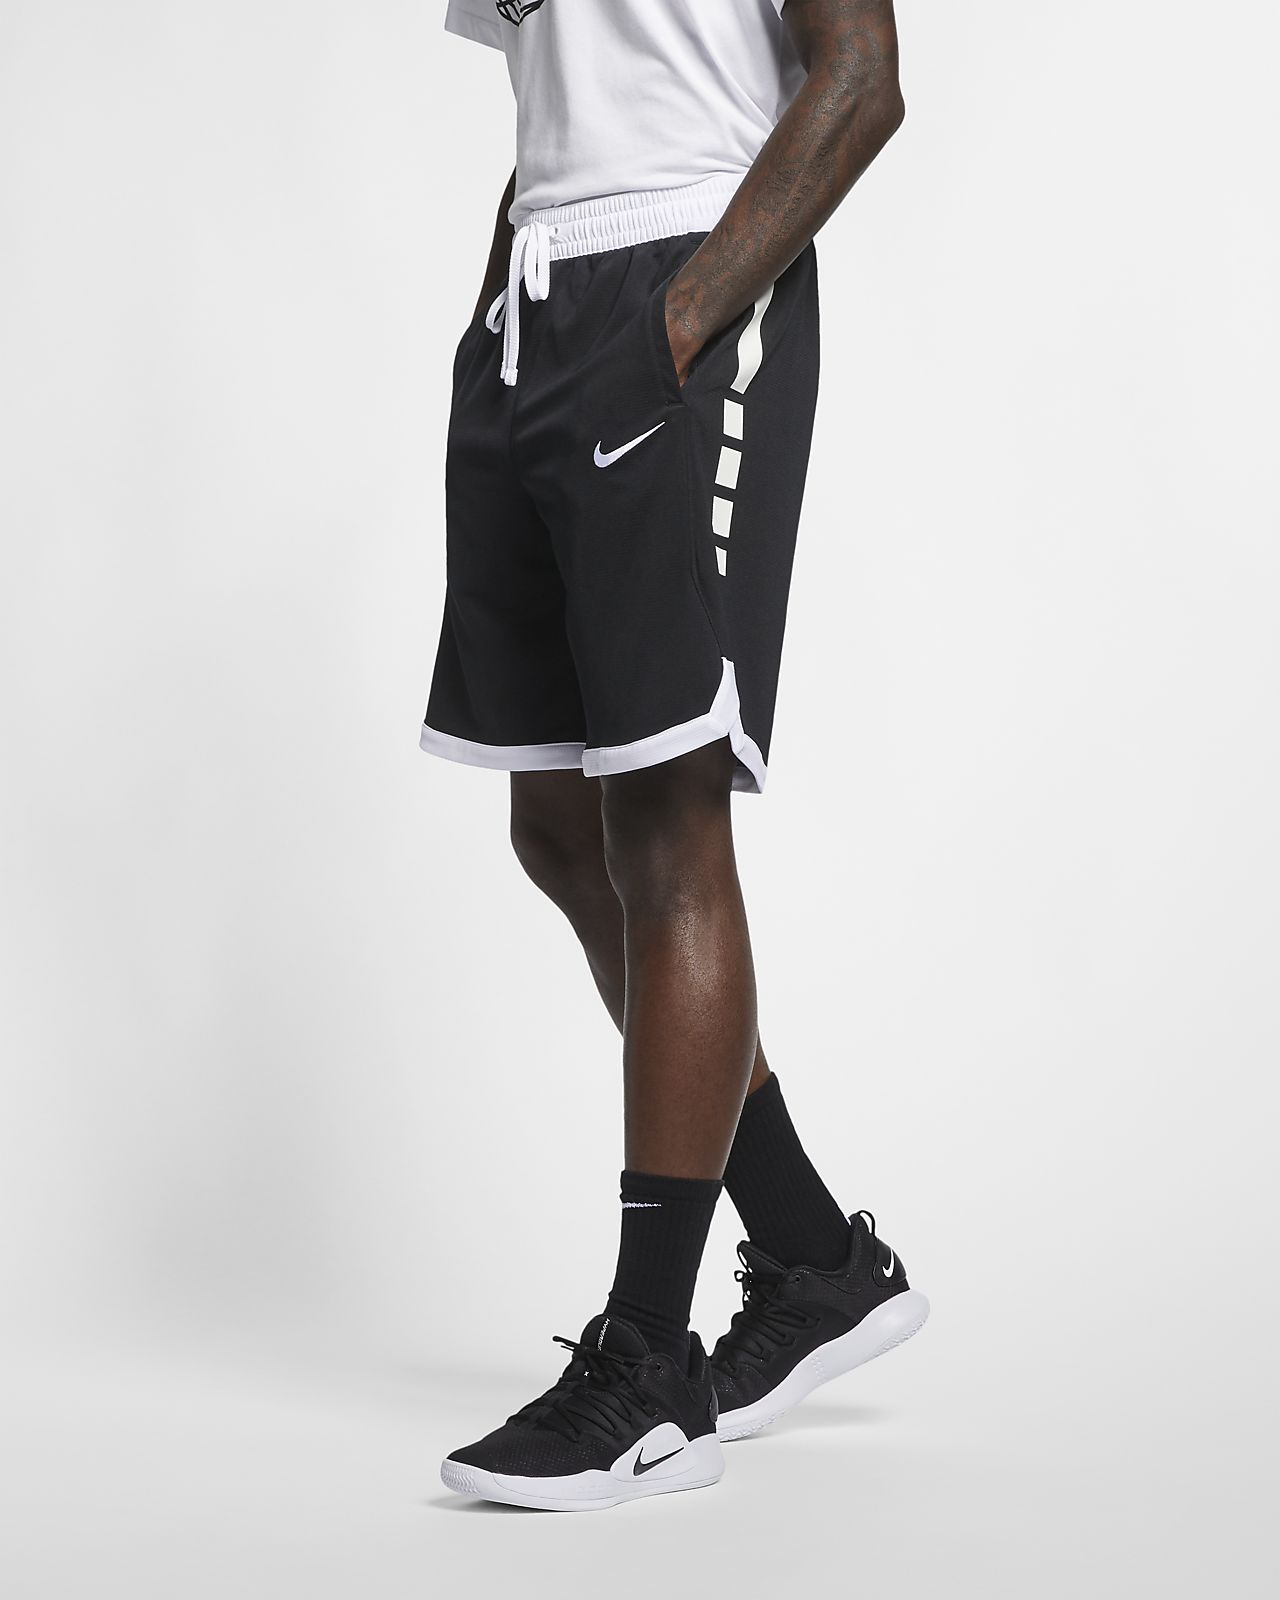 Nike Dri FIT Elite Men's Basketball Shorts